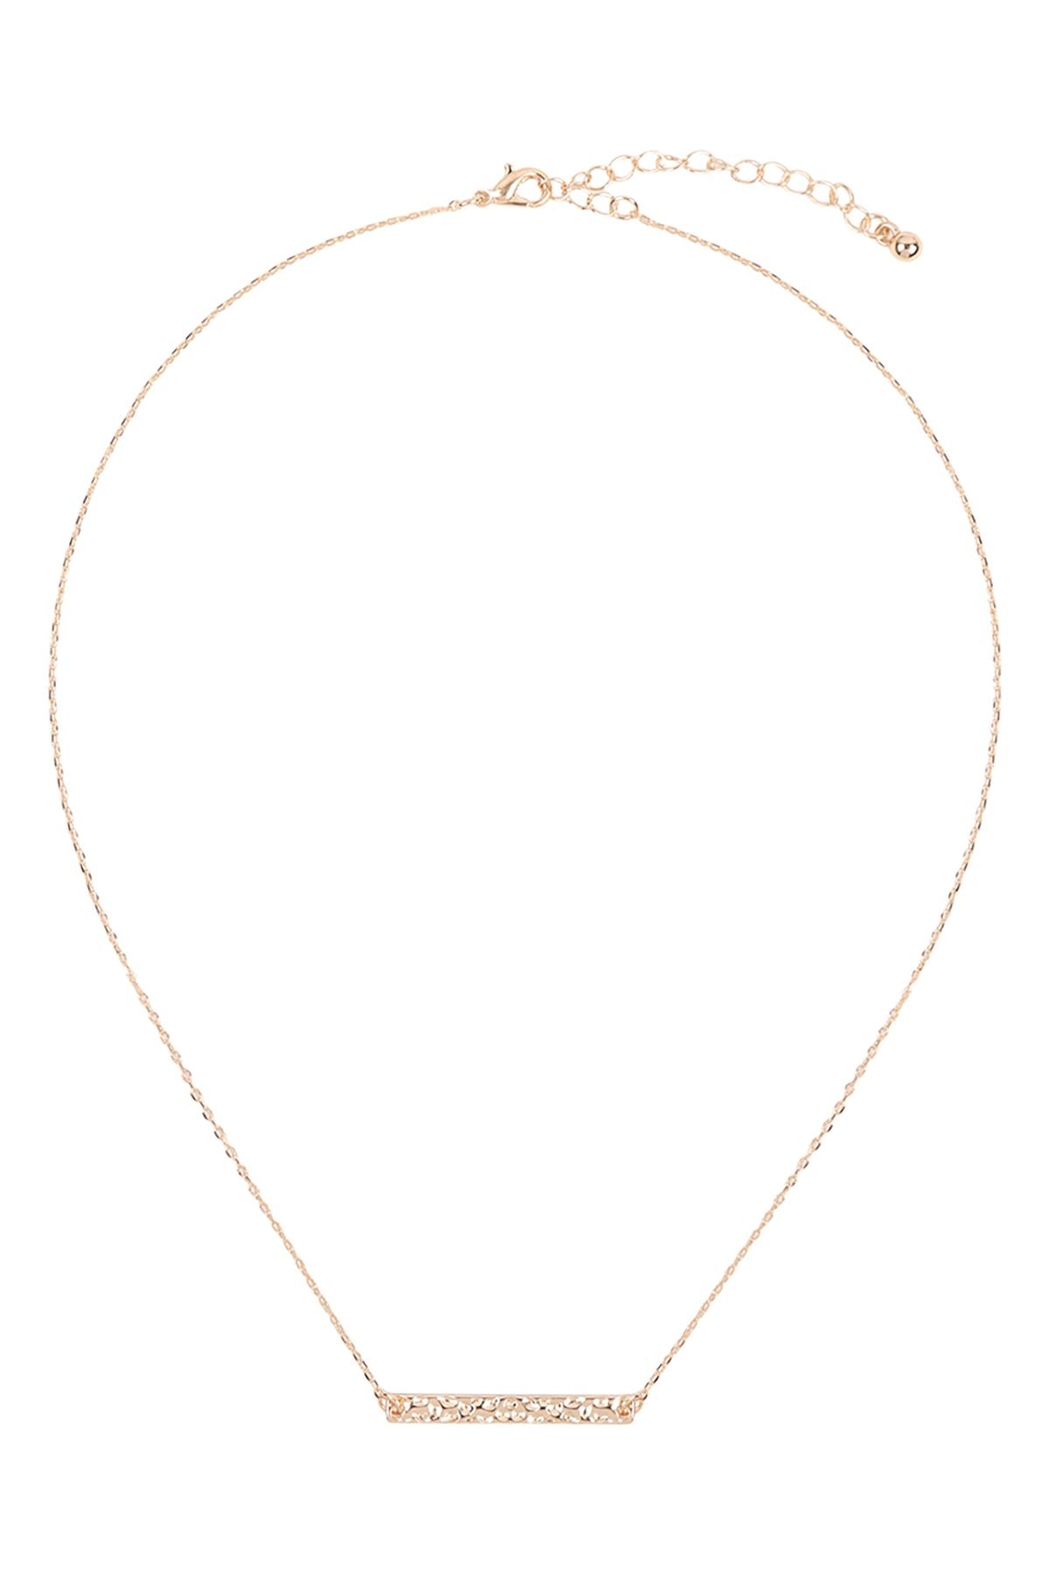 Riah Fashion Hammered-Brass-Bar-Necklace - Front Full Image